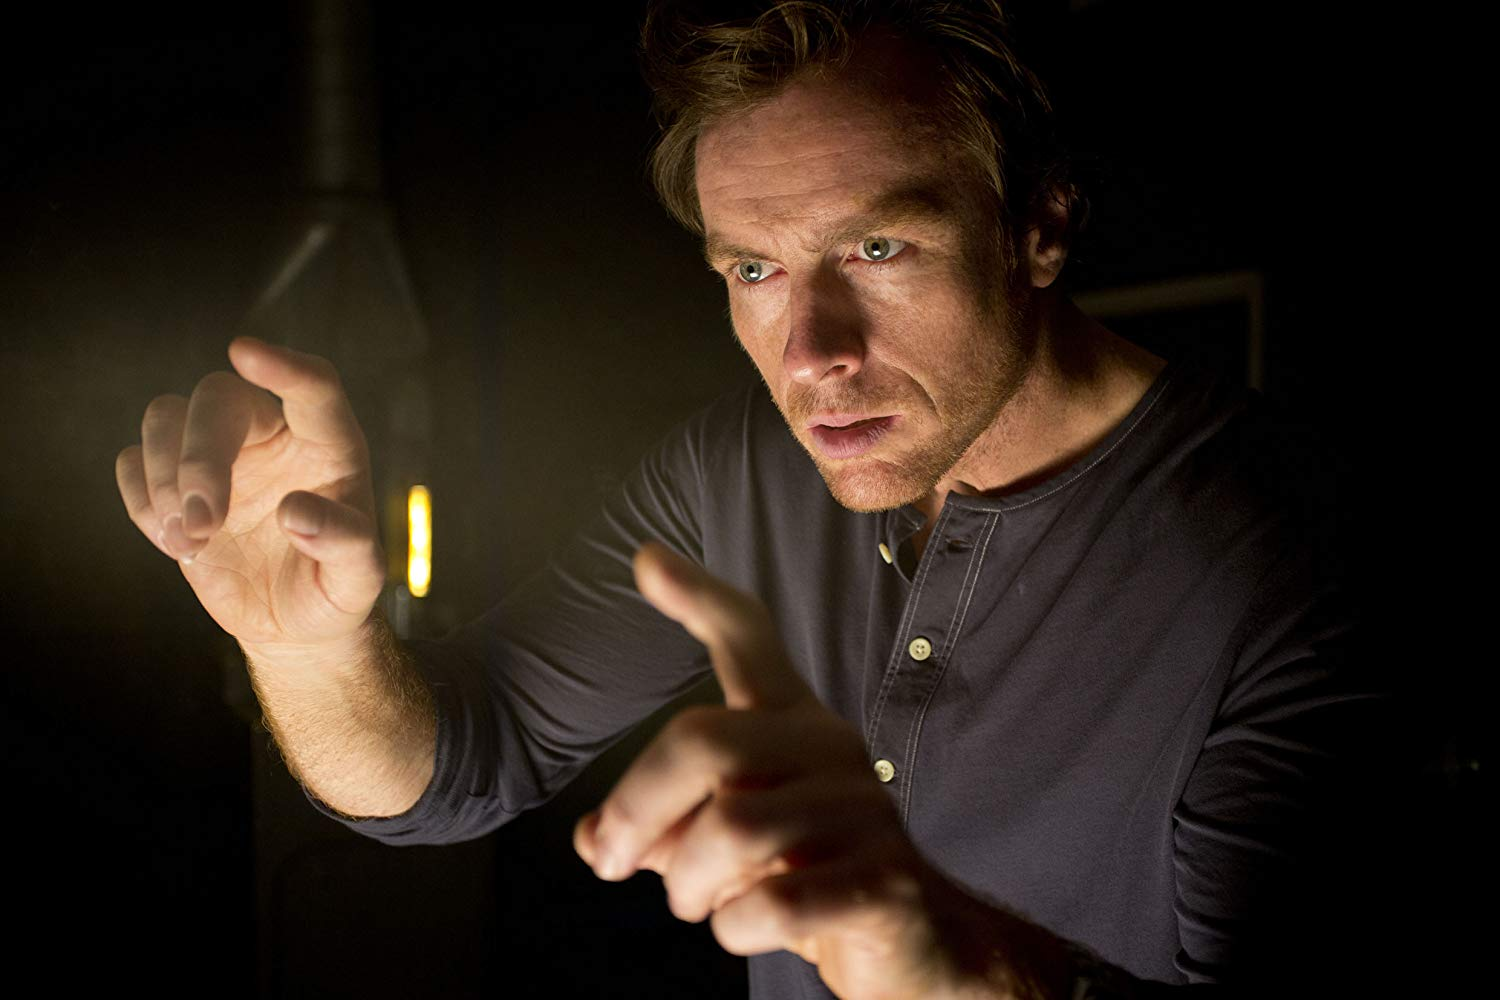 Toby Stephens as A.I. researcher Dr Vincent McCarthy in The Machine (2013)